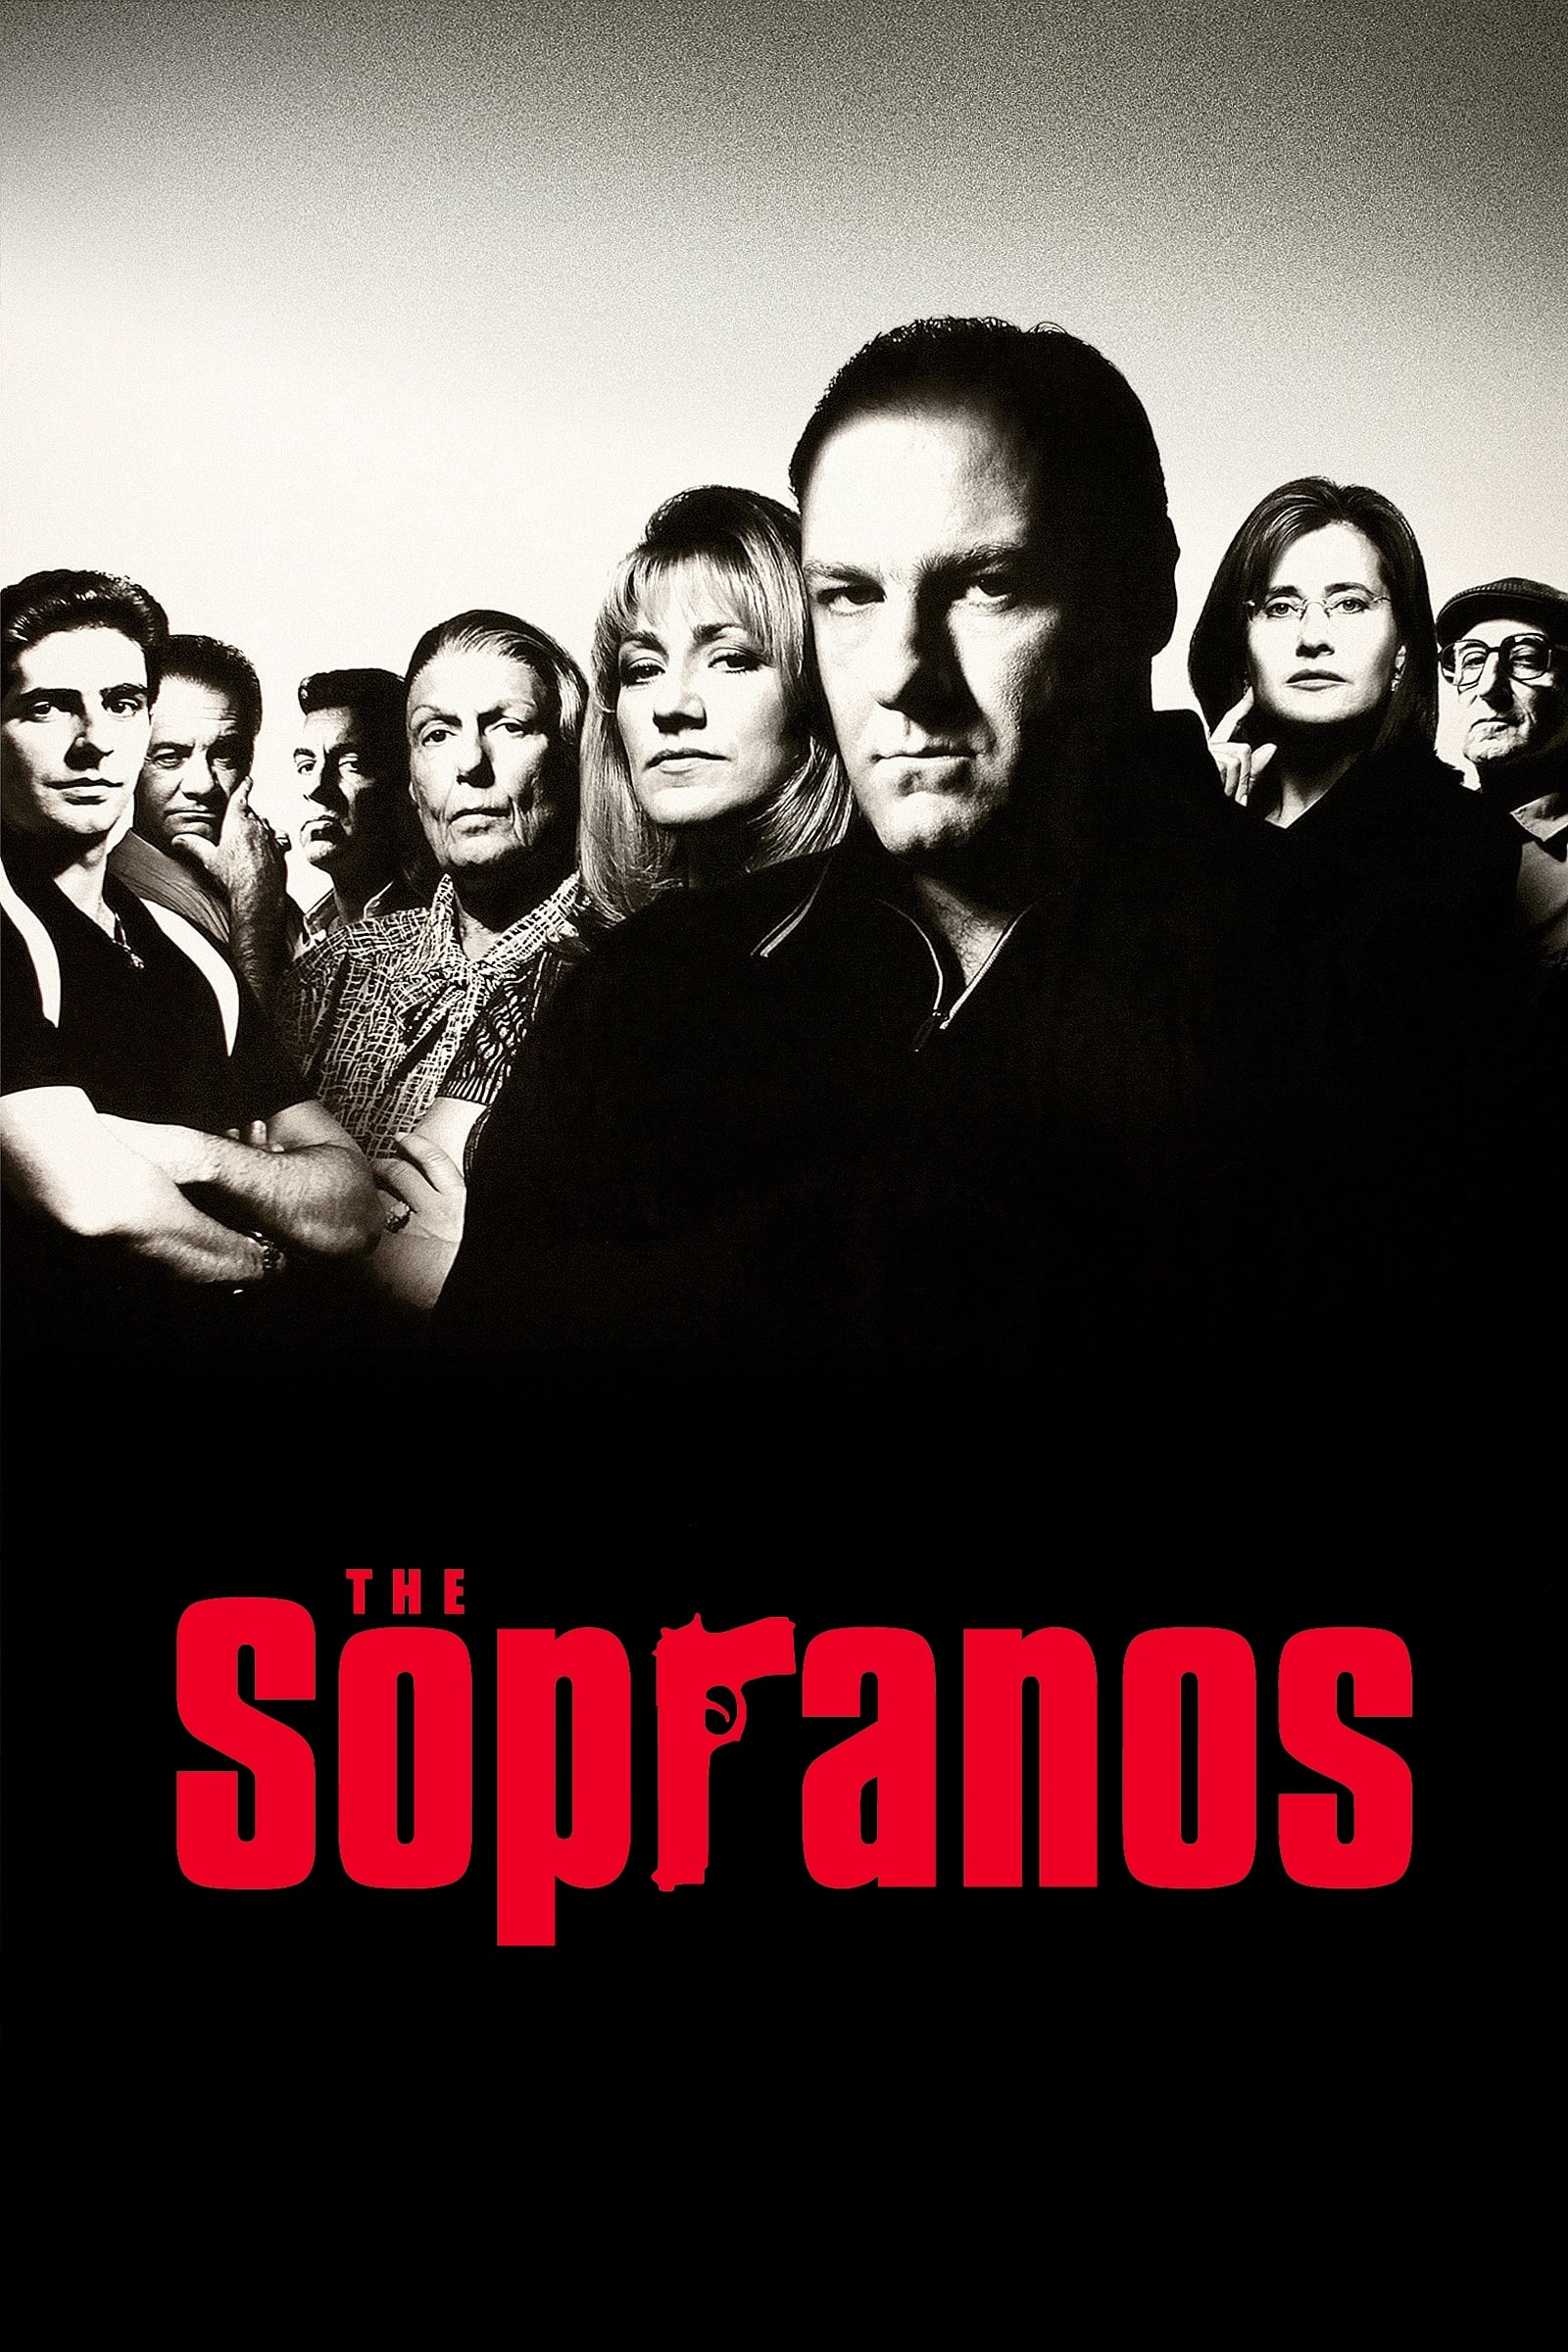 image for The Sopranos